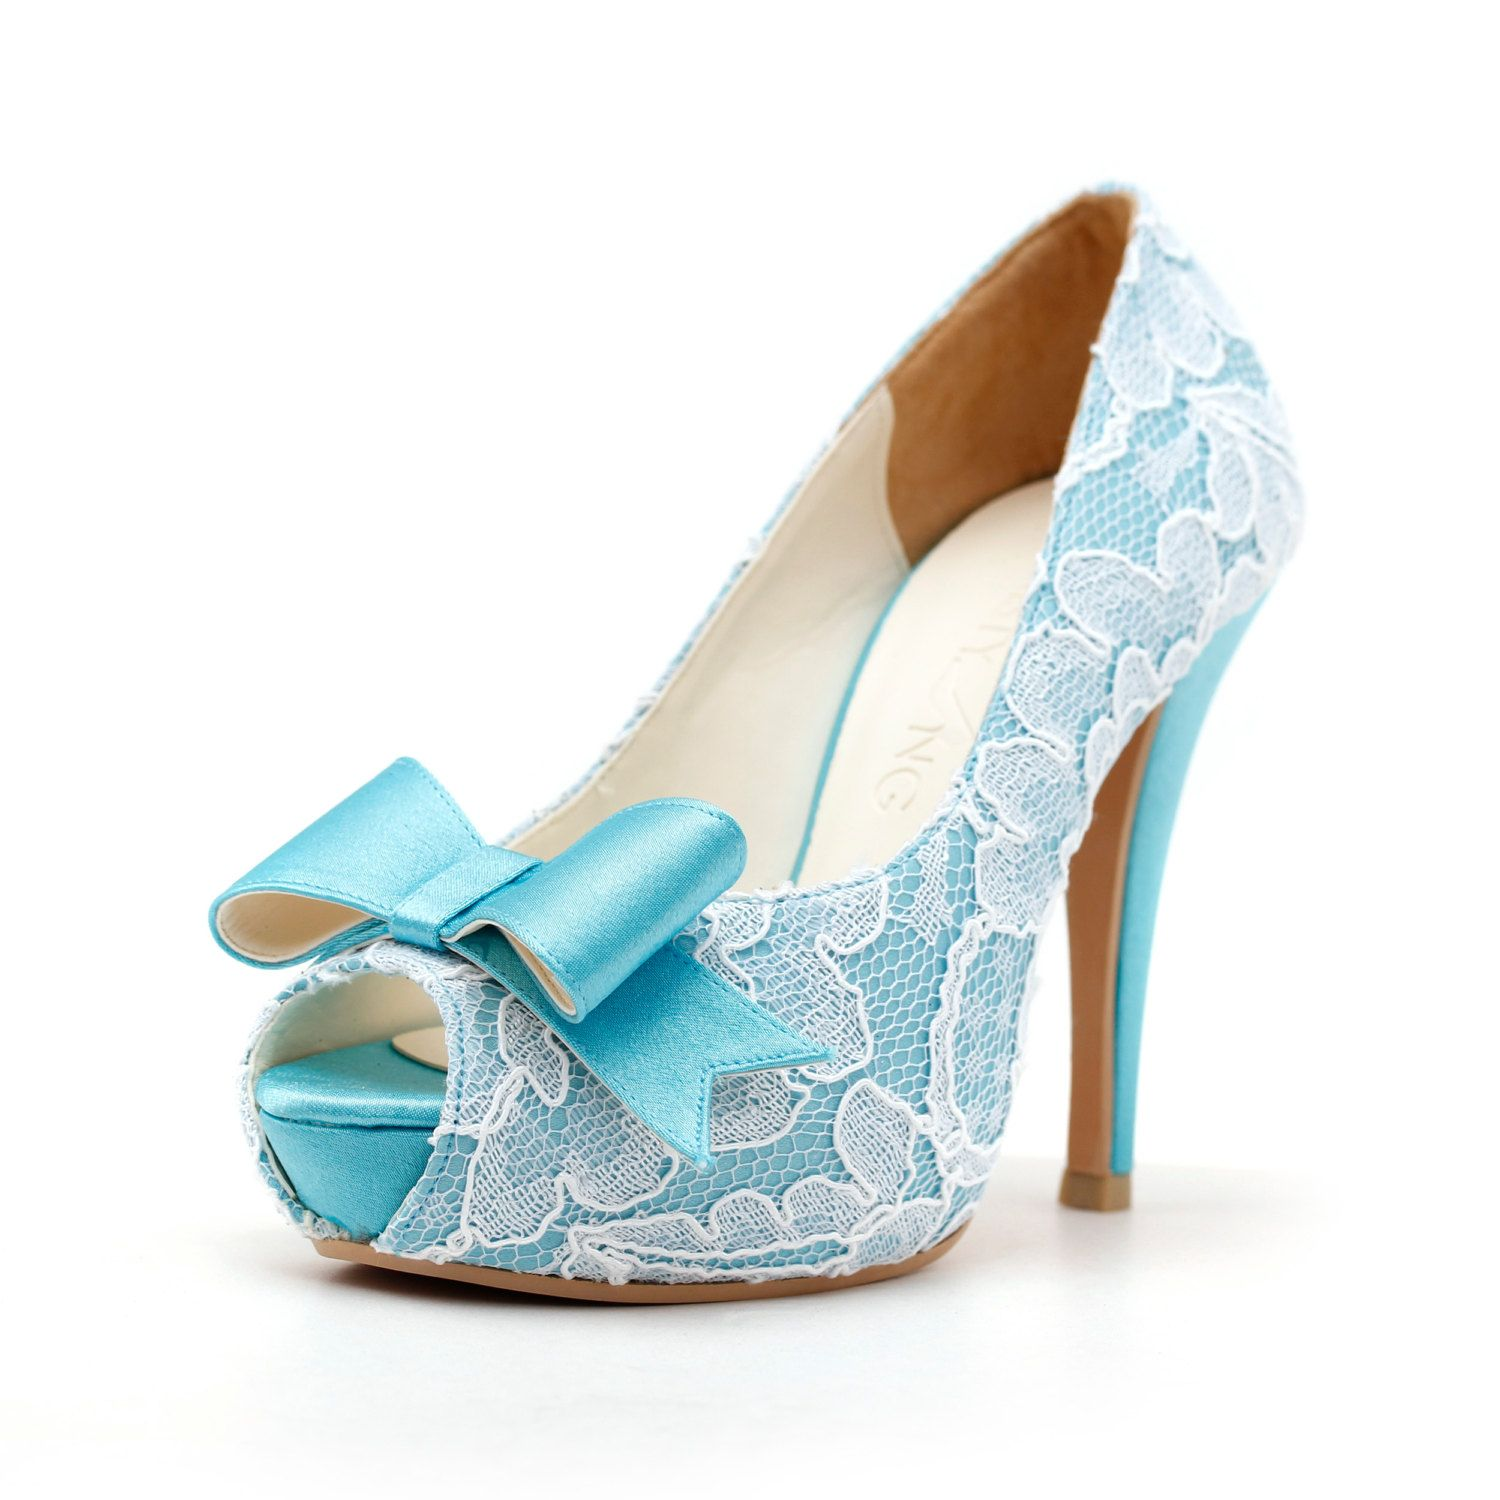 Custom made wedding heels sky blue lace wedding heels with front